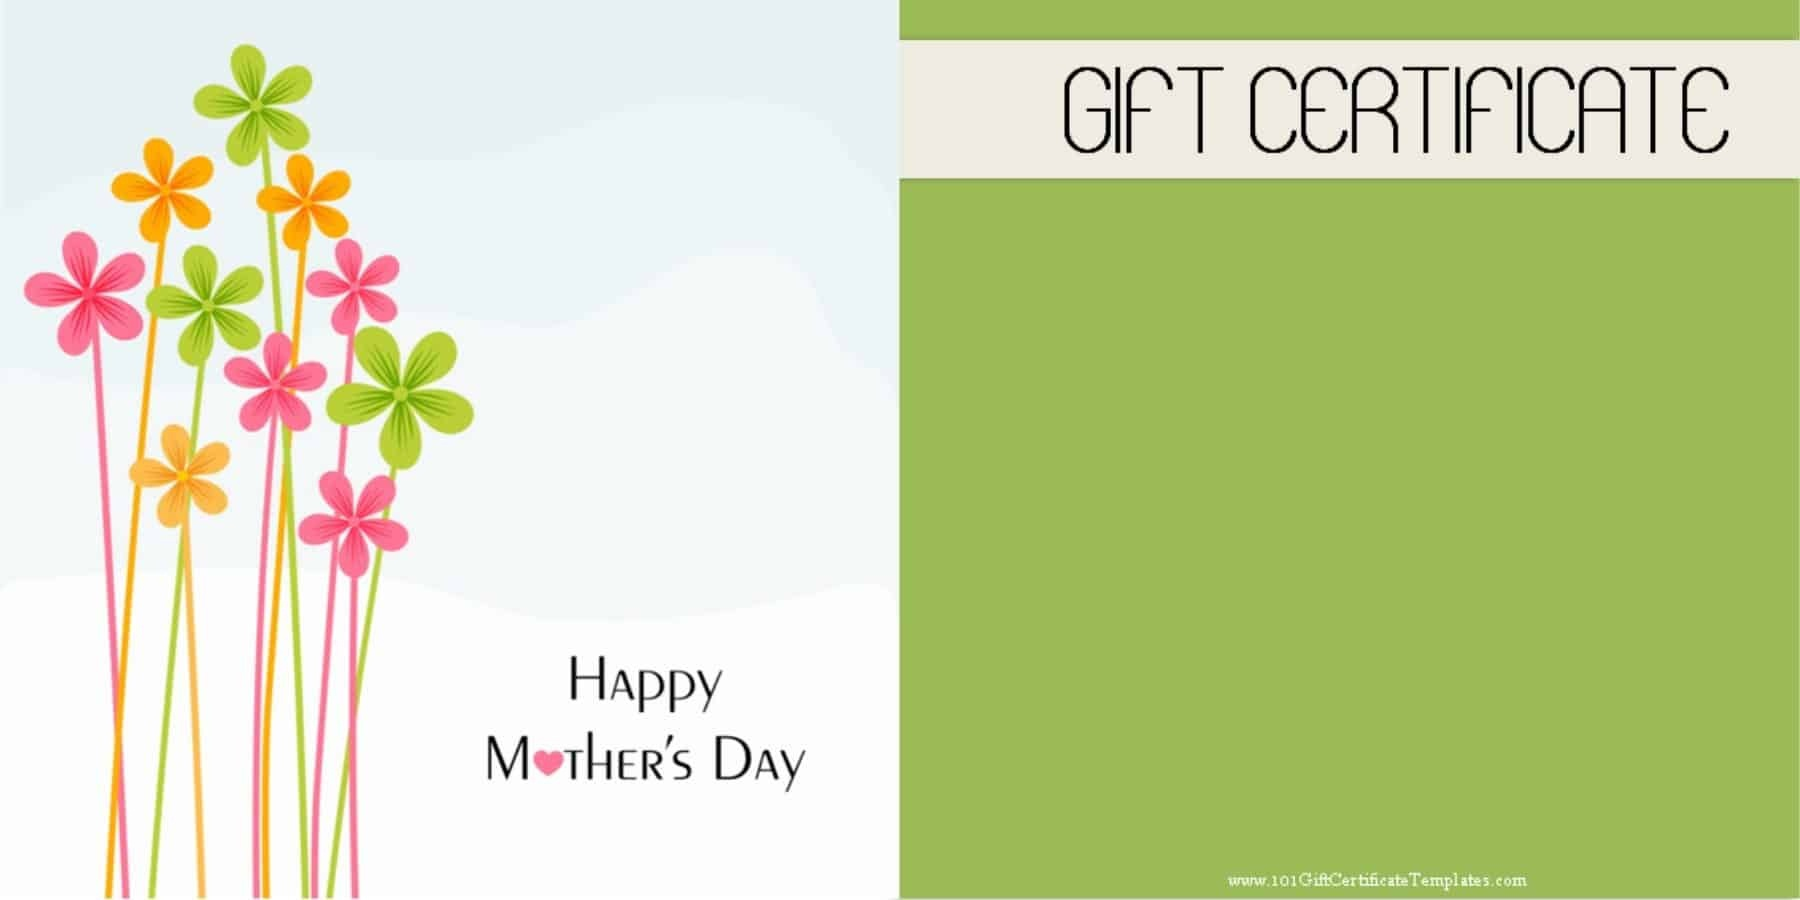 Mother's Day Gift Certificate Templates - Free Printable Pedicure Gift Certificate